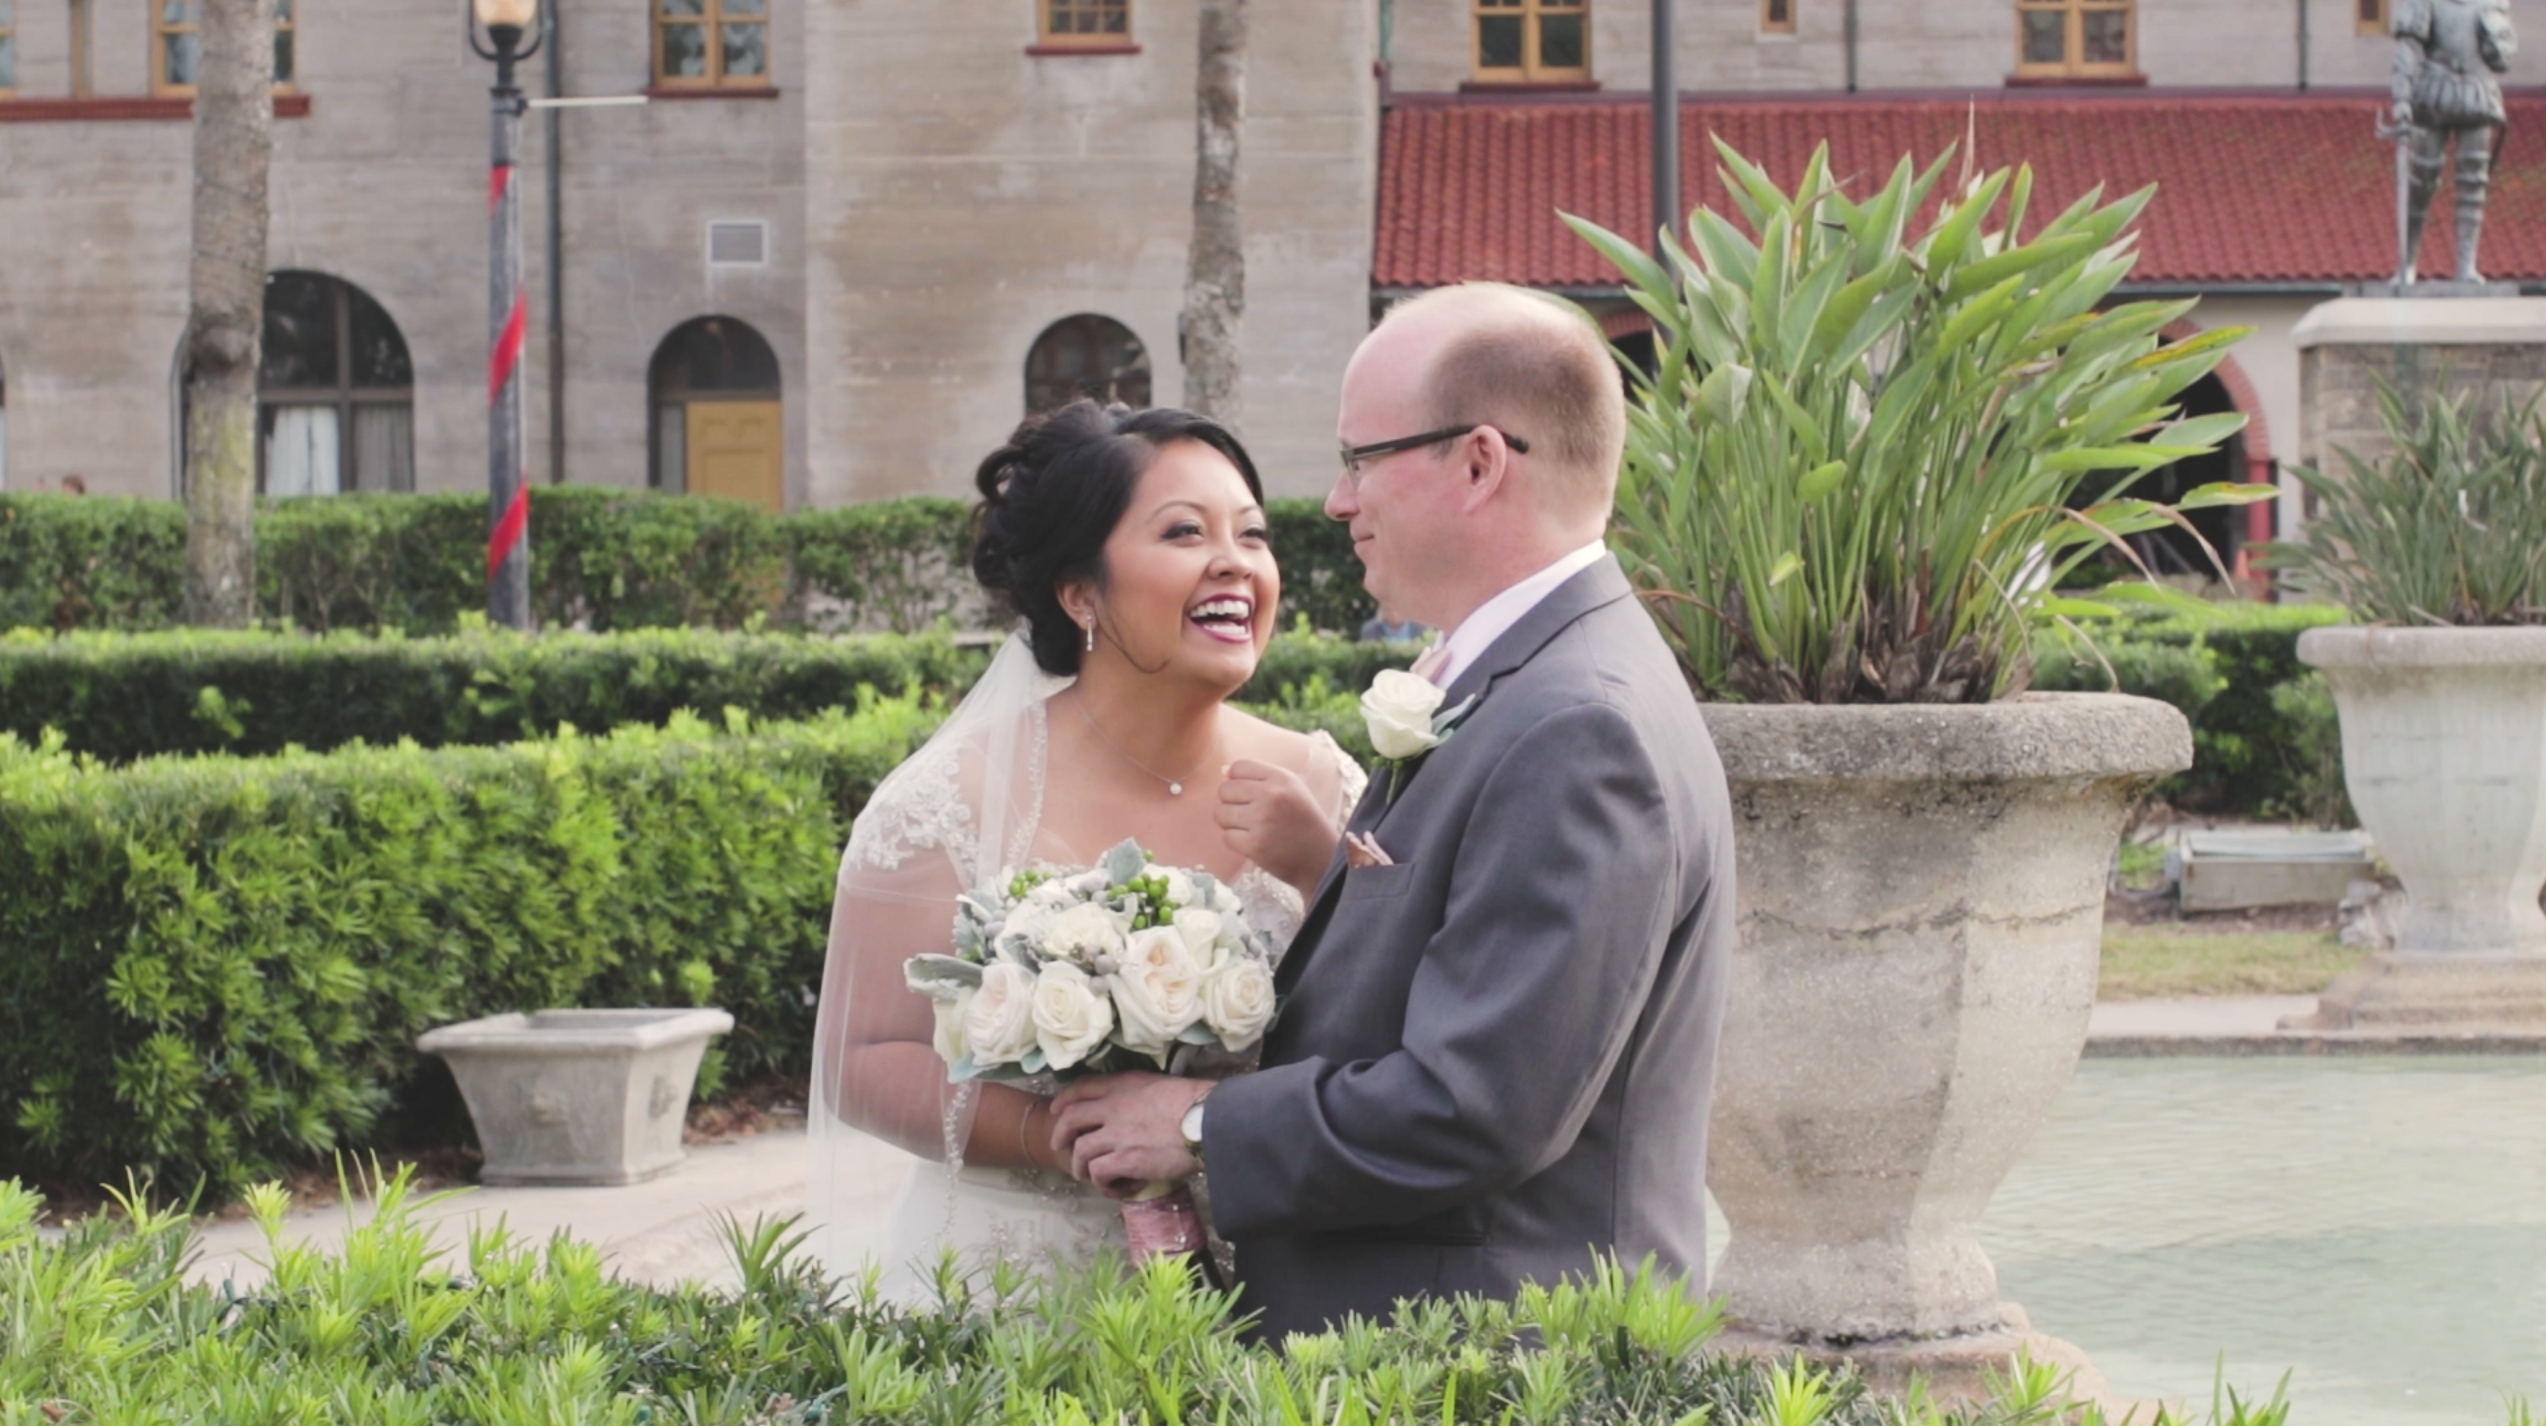 Lynda + John | St. Augustine, Florida | Treasury on the Plaza, St. Augustine